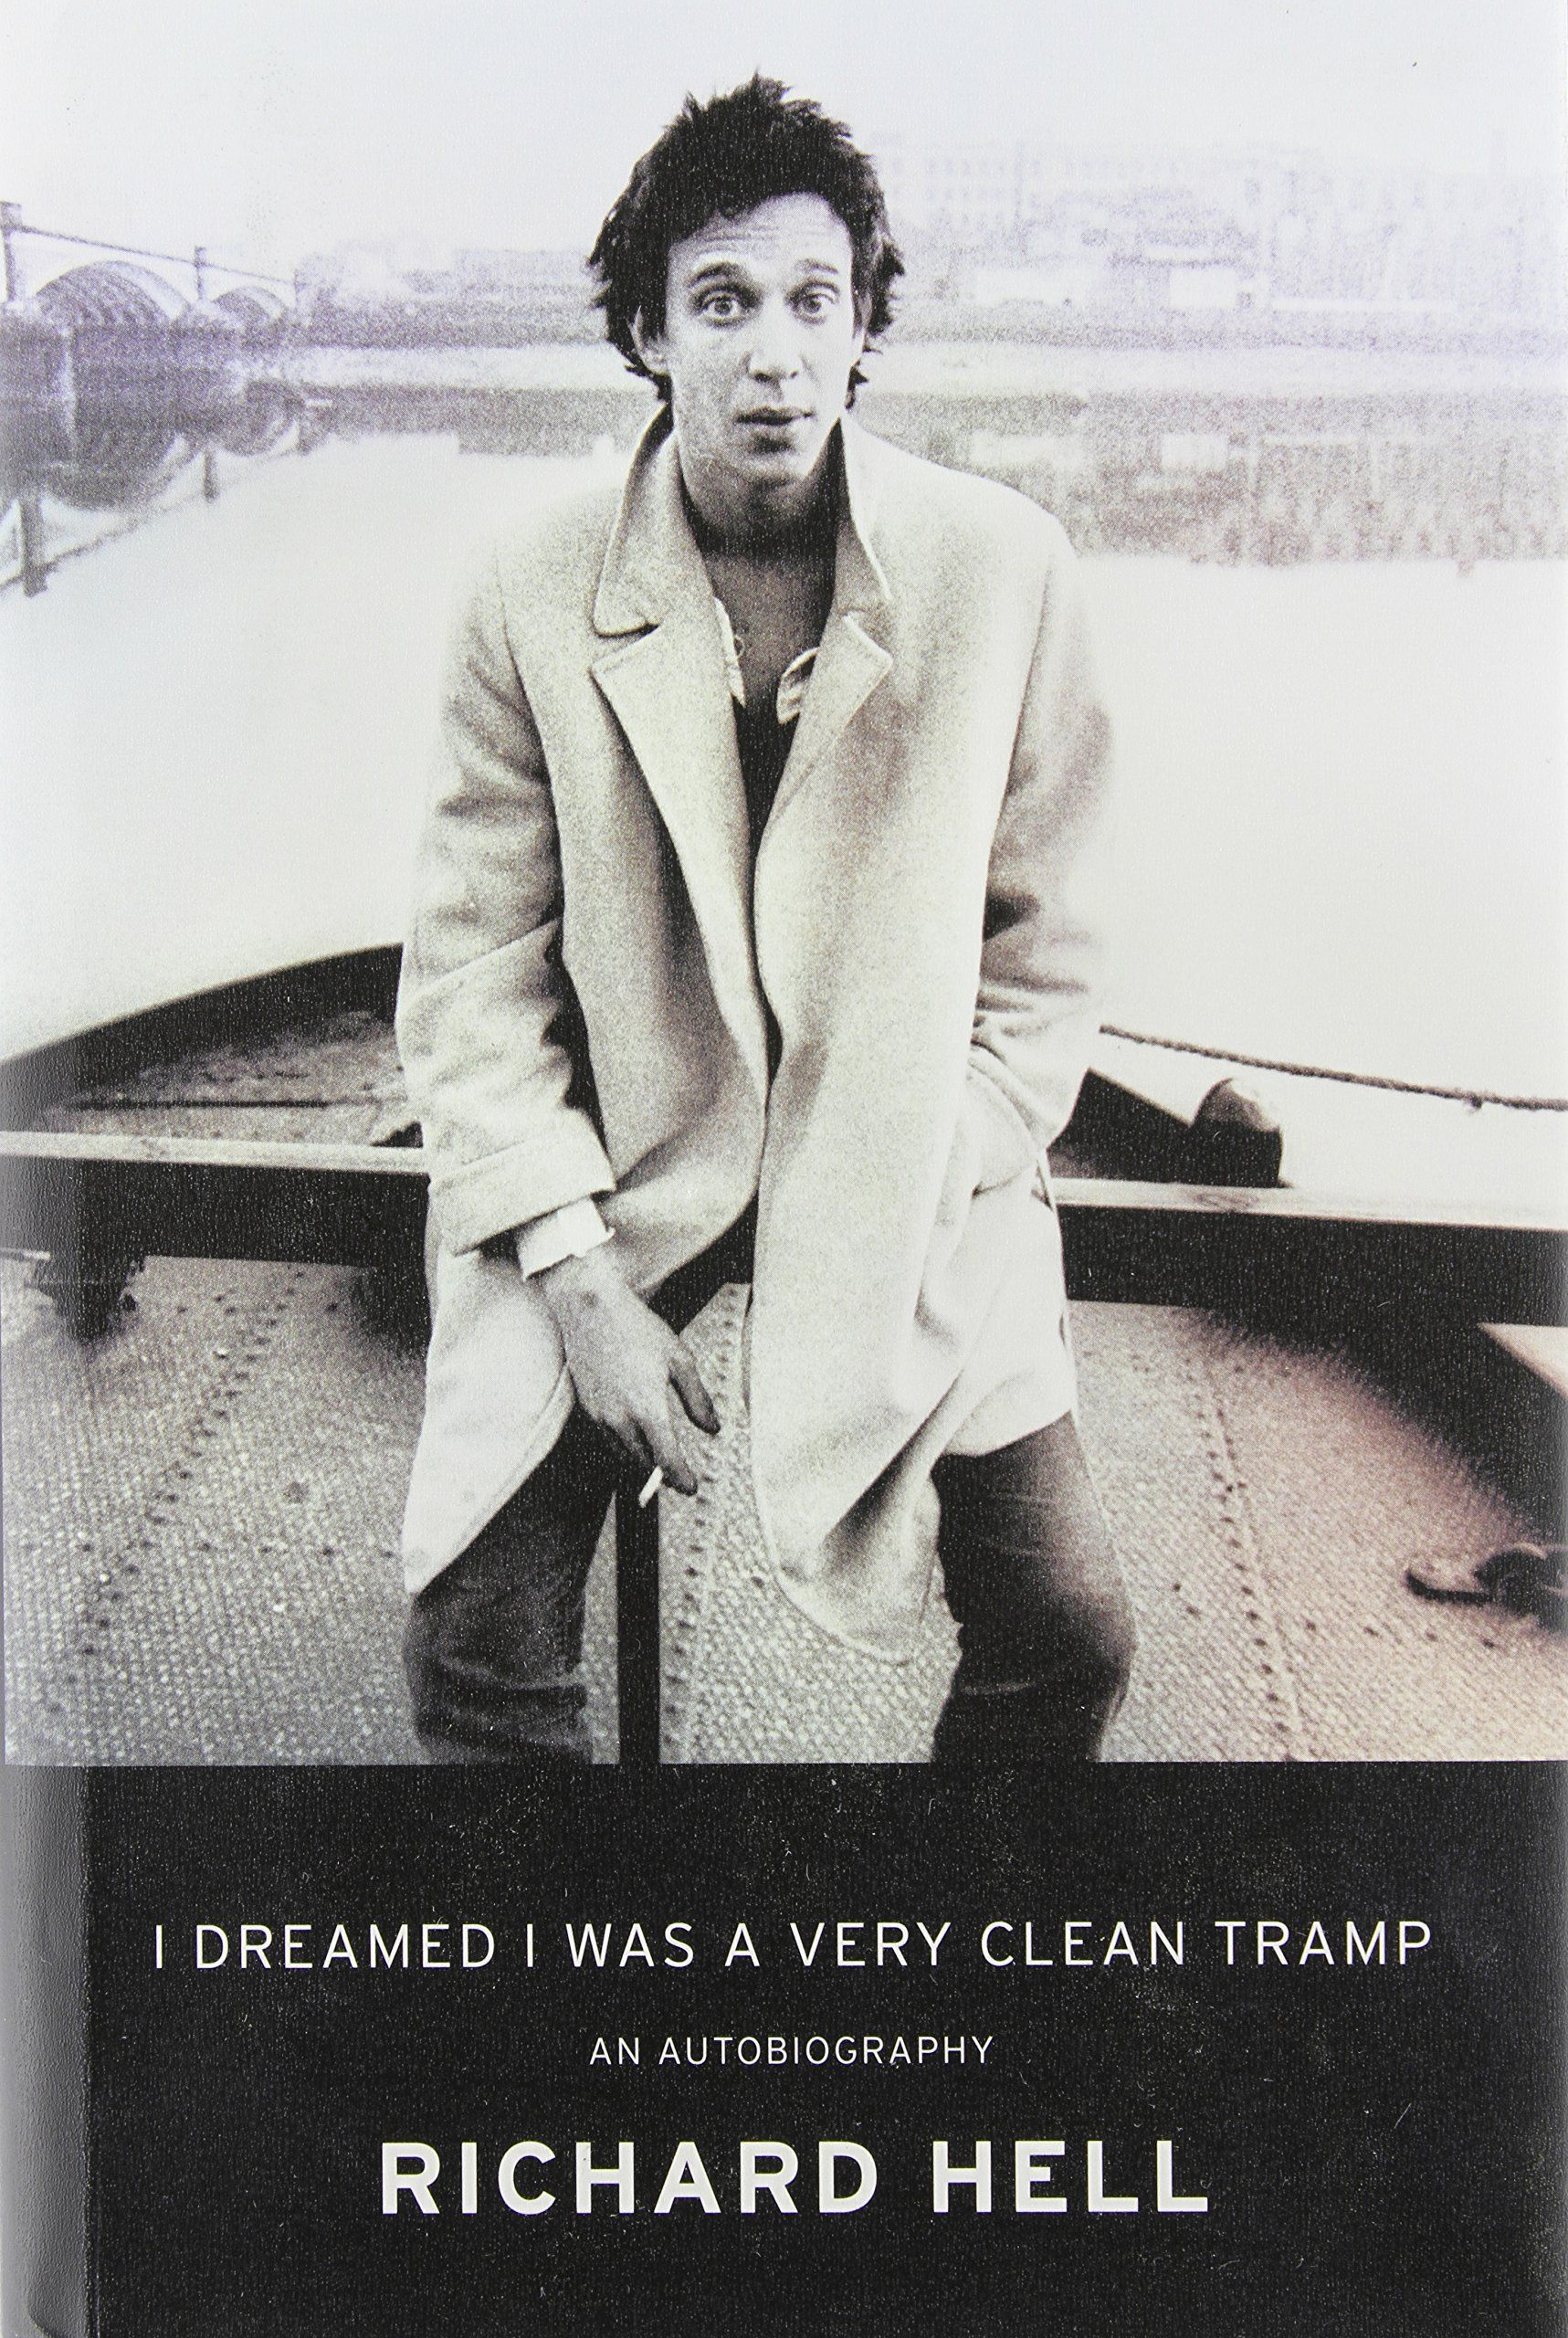 Richard Hell Kentucky Born Meyers Moved To New York City After Dropping Out Of High School In 1966 Aspiring Become A Poet